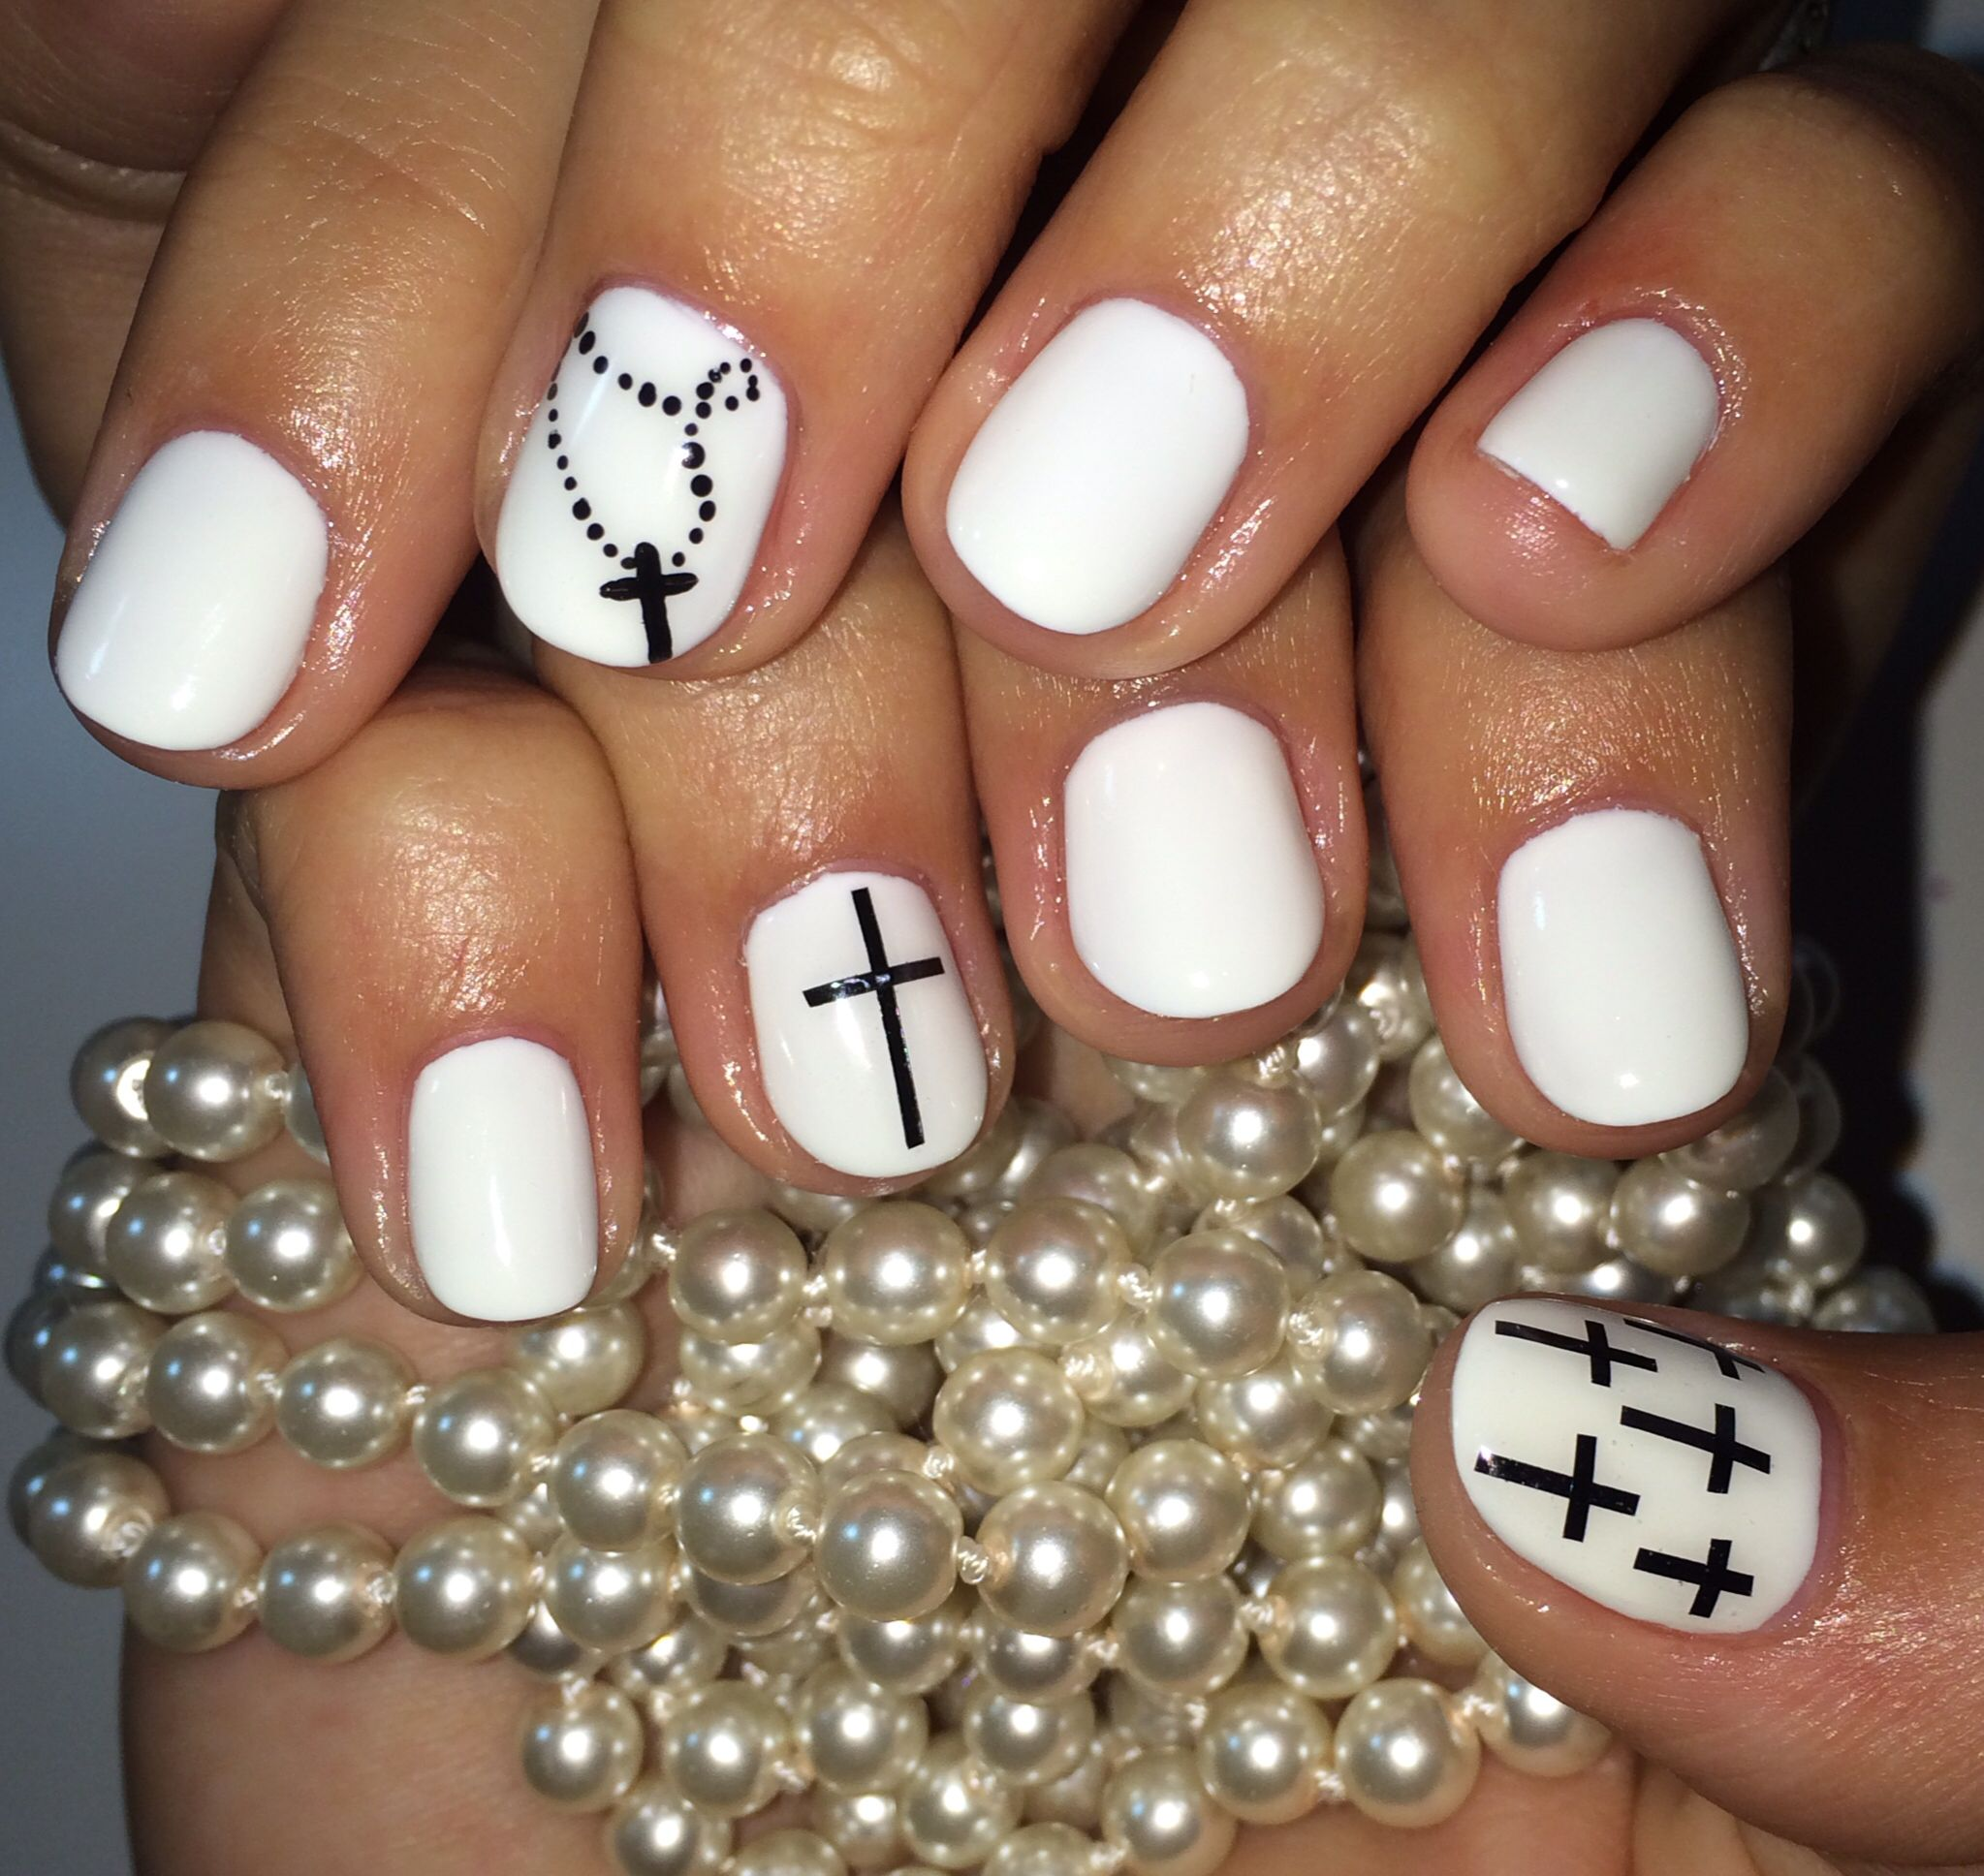 White mani with black cross nail art spring summer 2014 design white mani with black cross nail art spring summer 2014 design bymargarita prinsesfo Choice Image